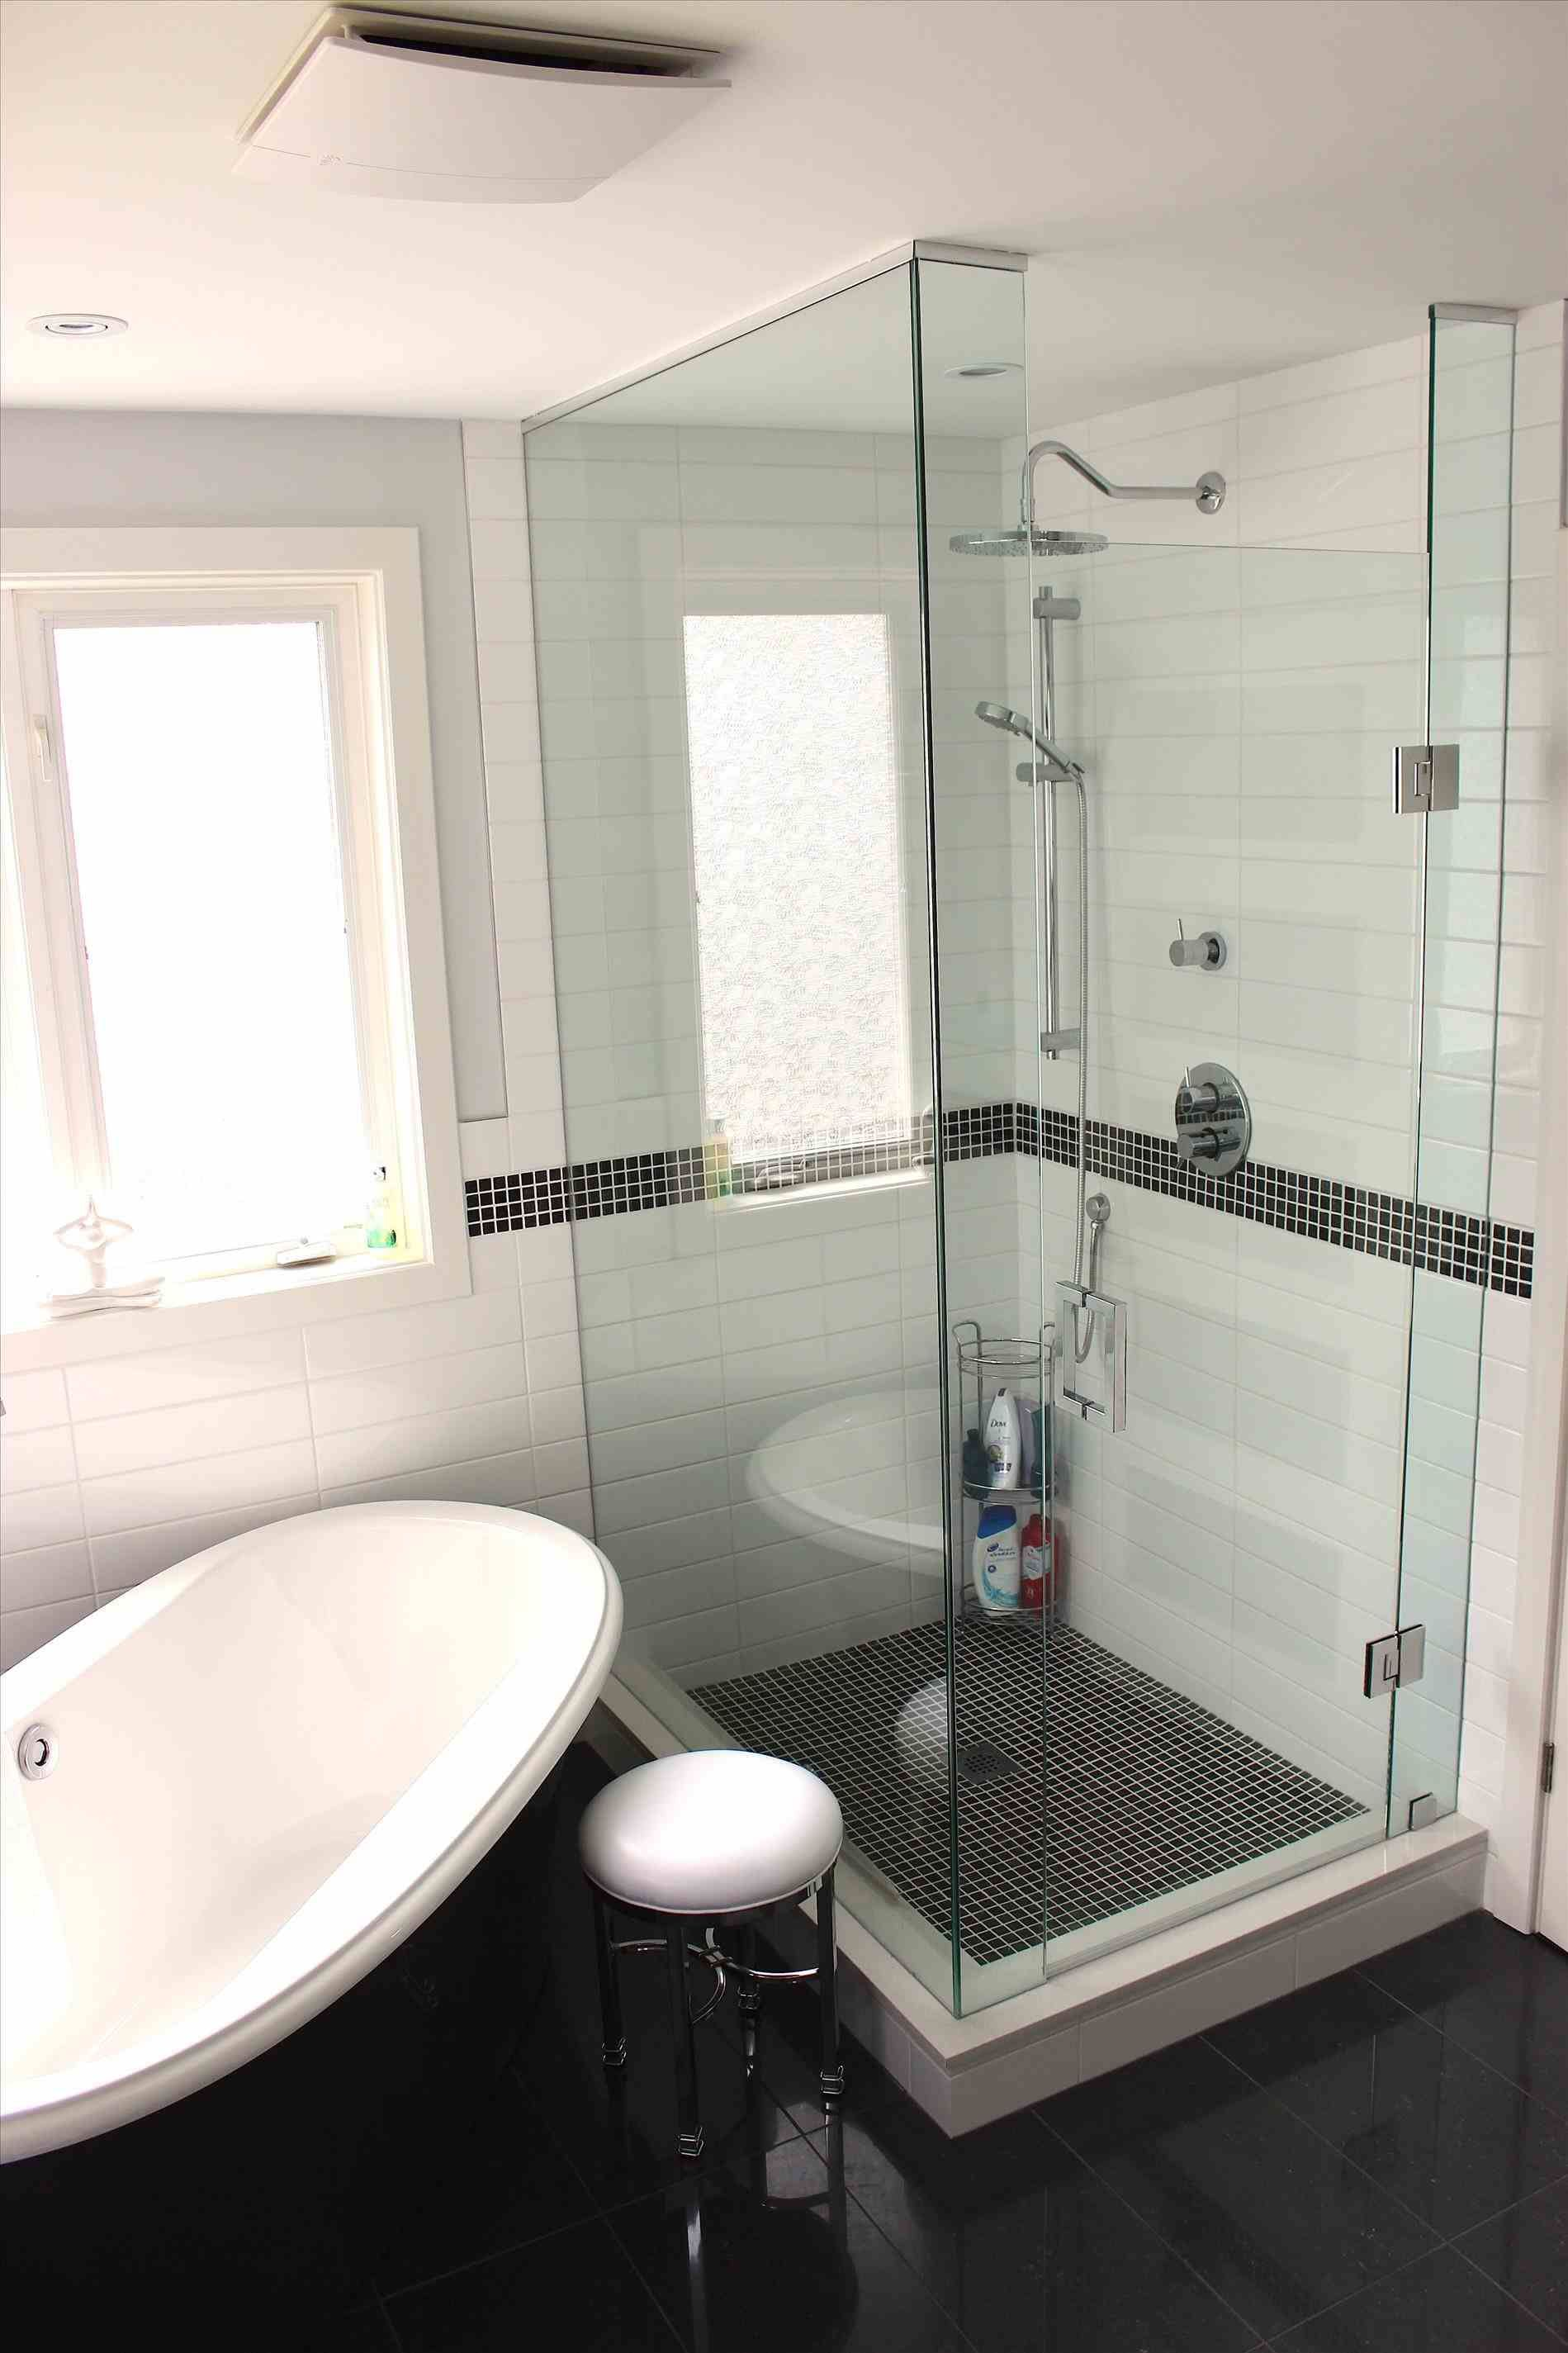 Small Master Bathroom With Separate Tub And Shower Stand Alone